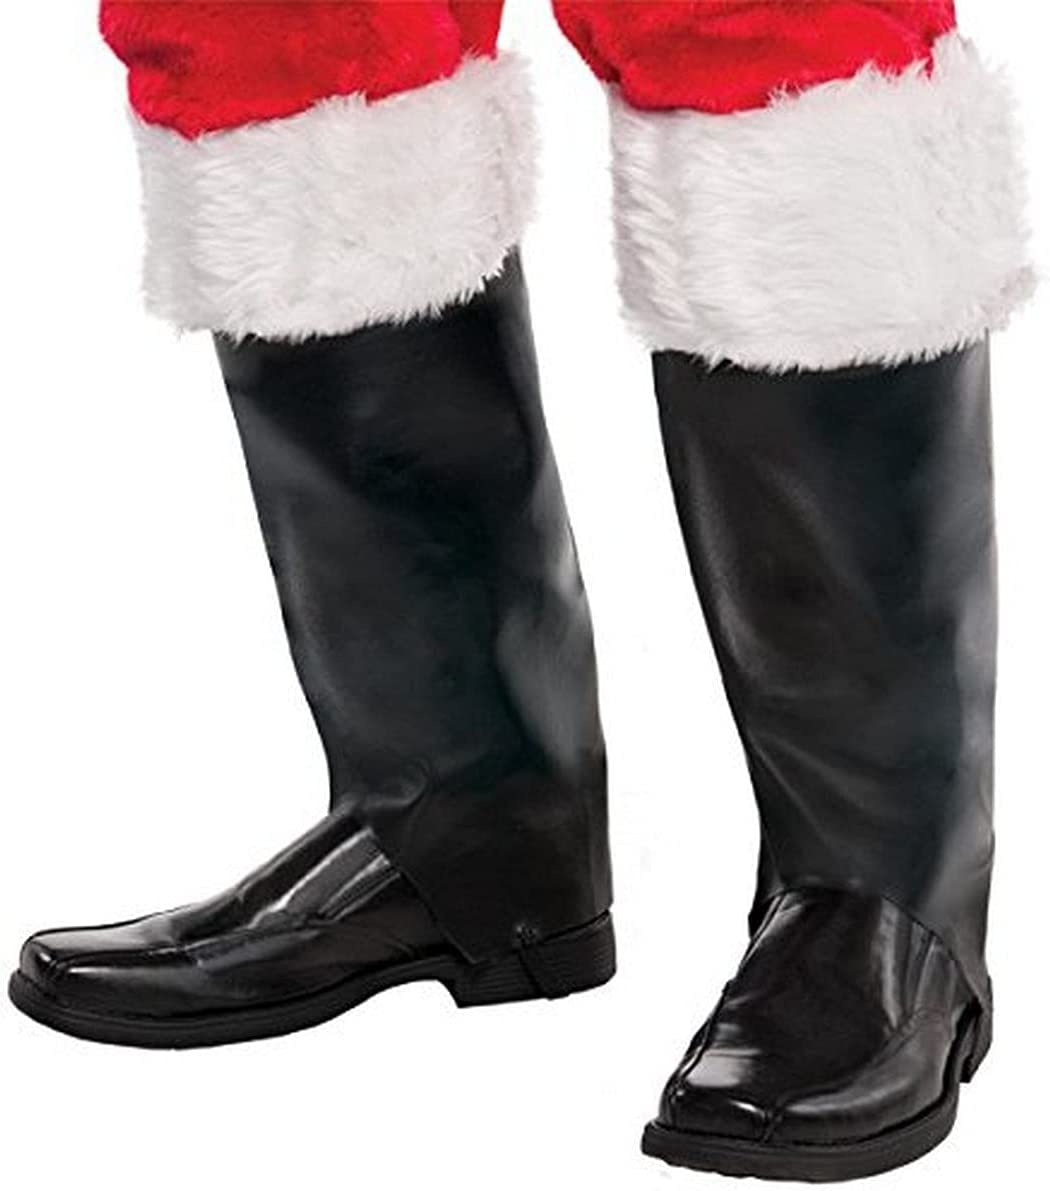 Christmas Selling rankings Santa Boot Covers 1 Costume Rapid rise Party pair